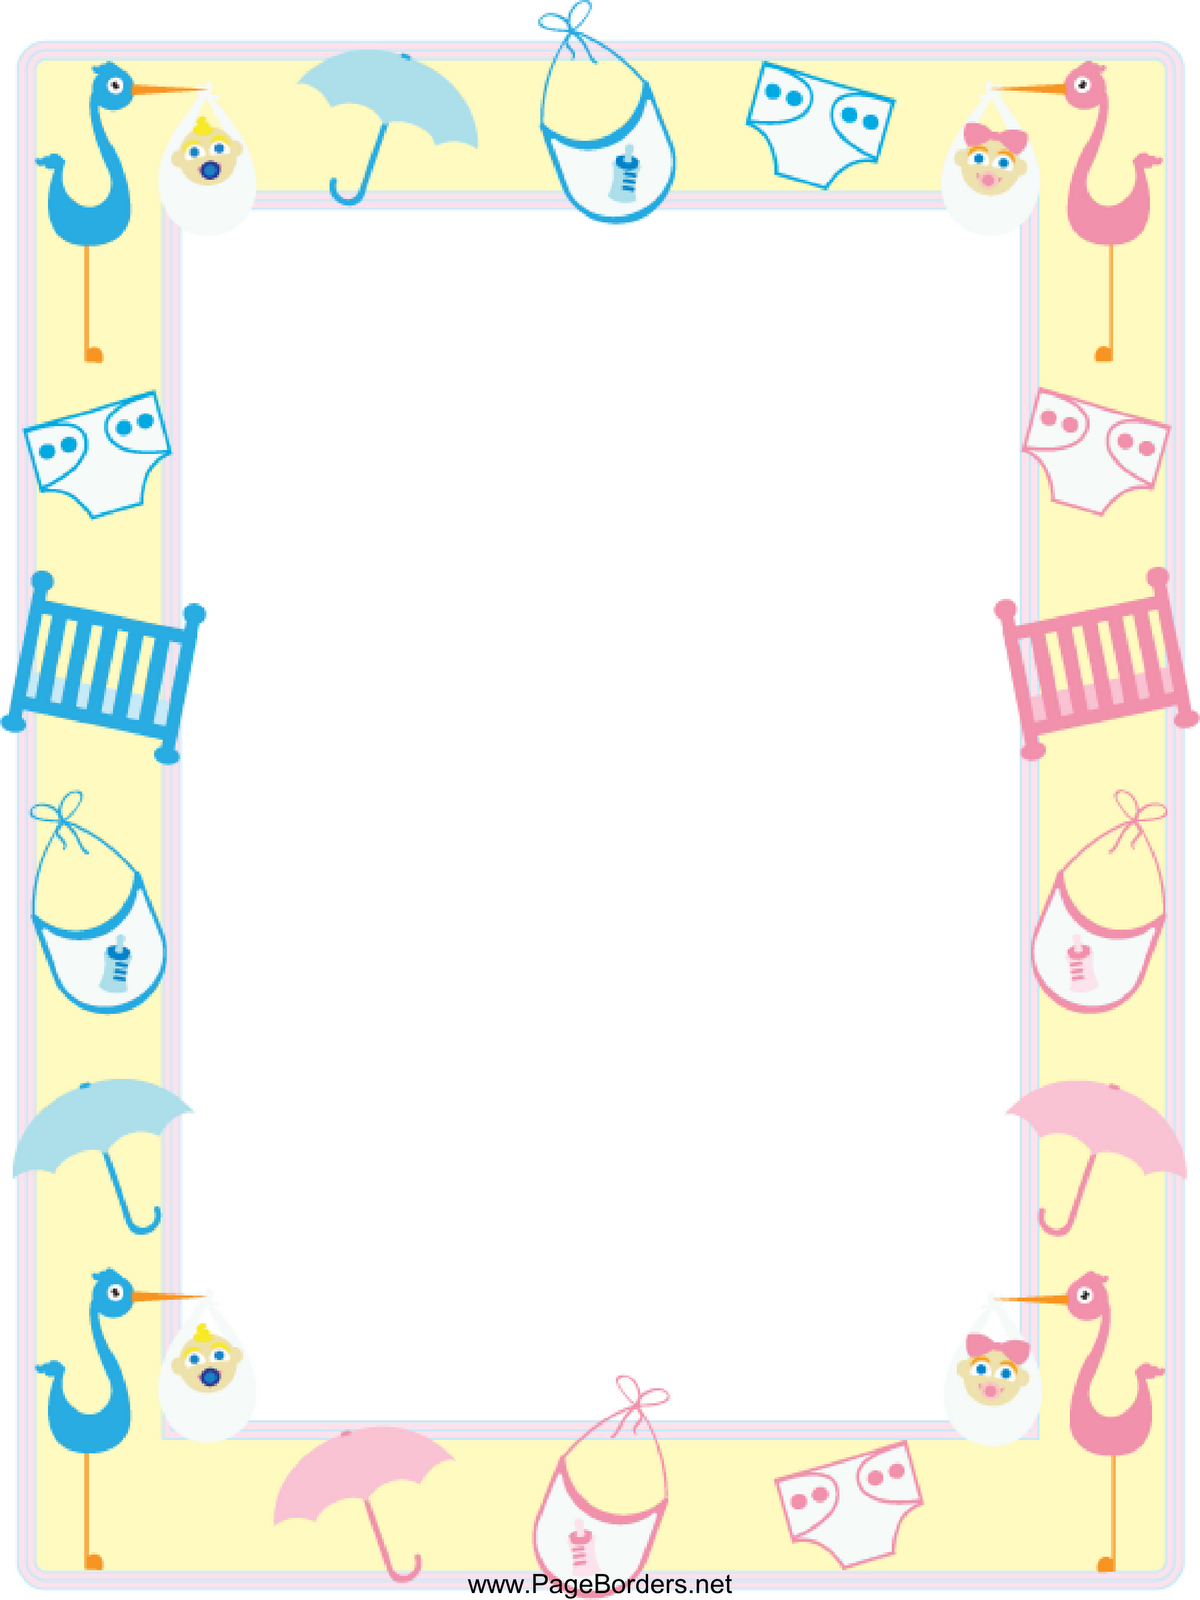 Baby Borders Free Cliparts That You Can -Baby Borders Free Cliparts That You Can Download To You Computer And-5